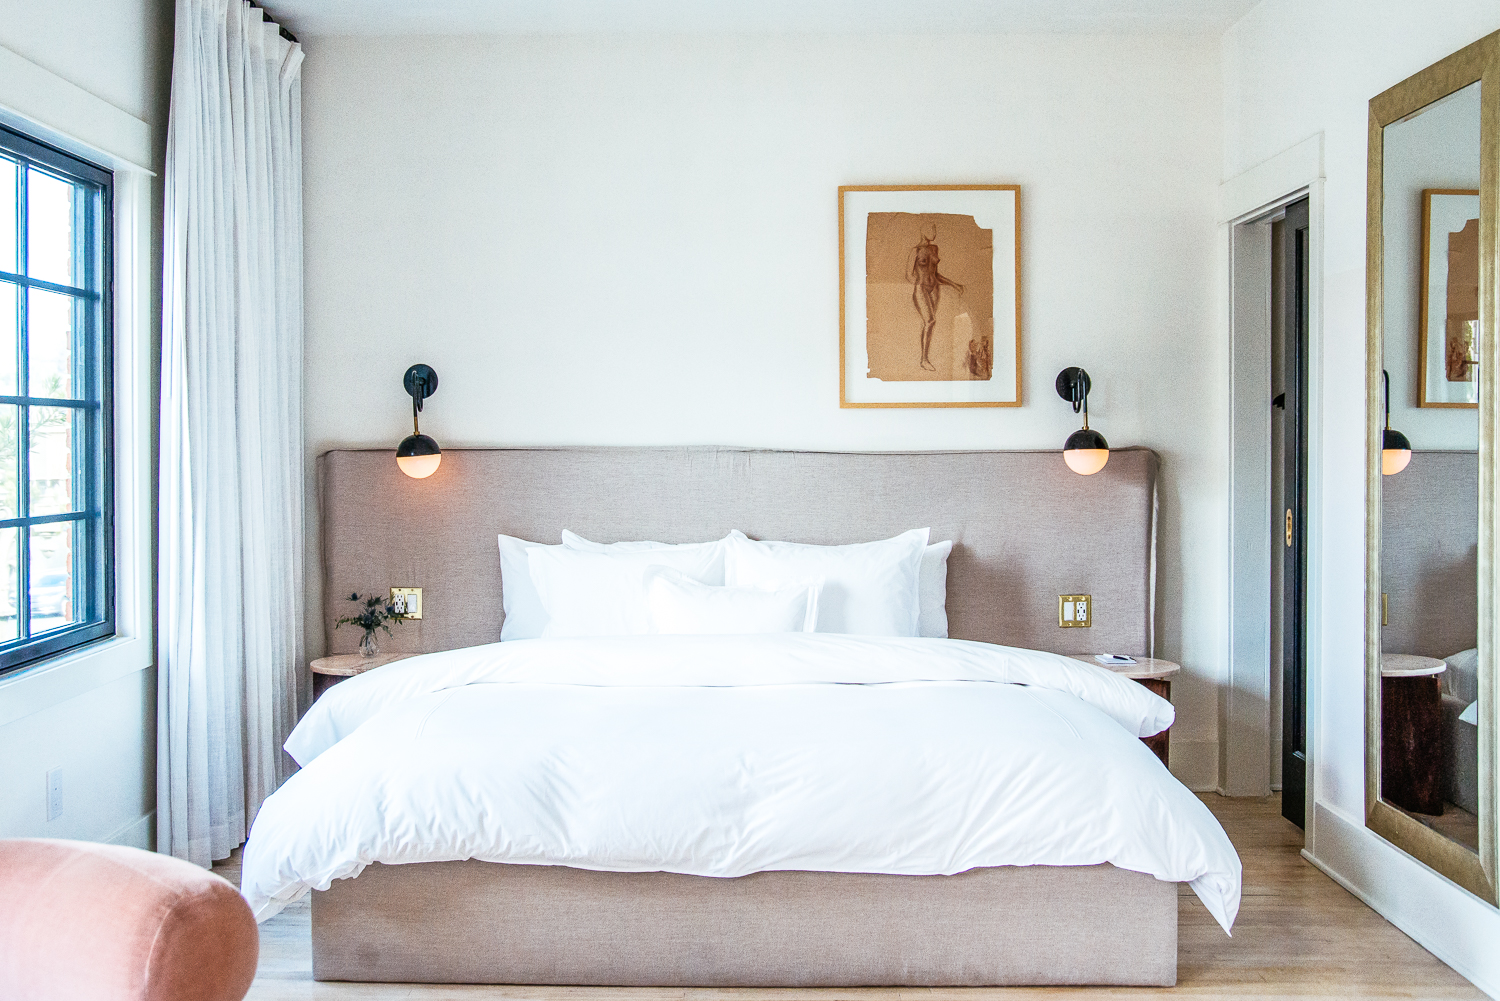 Hotel covell los angeles a stylish stay with a story in for Weekend getaway los angeles area